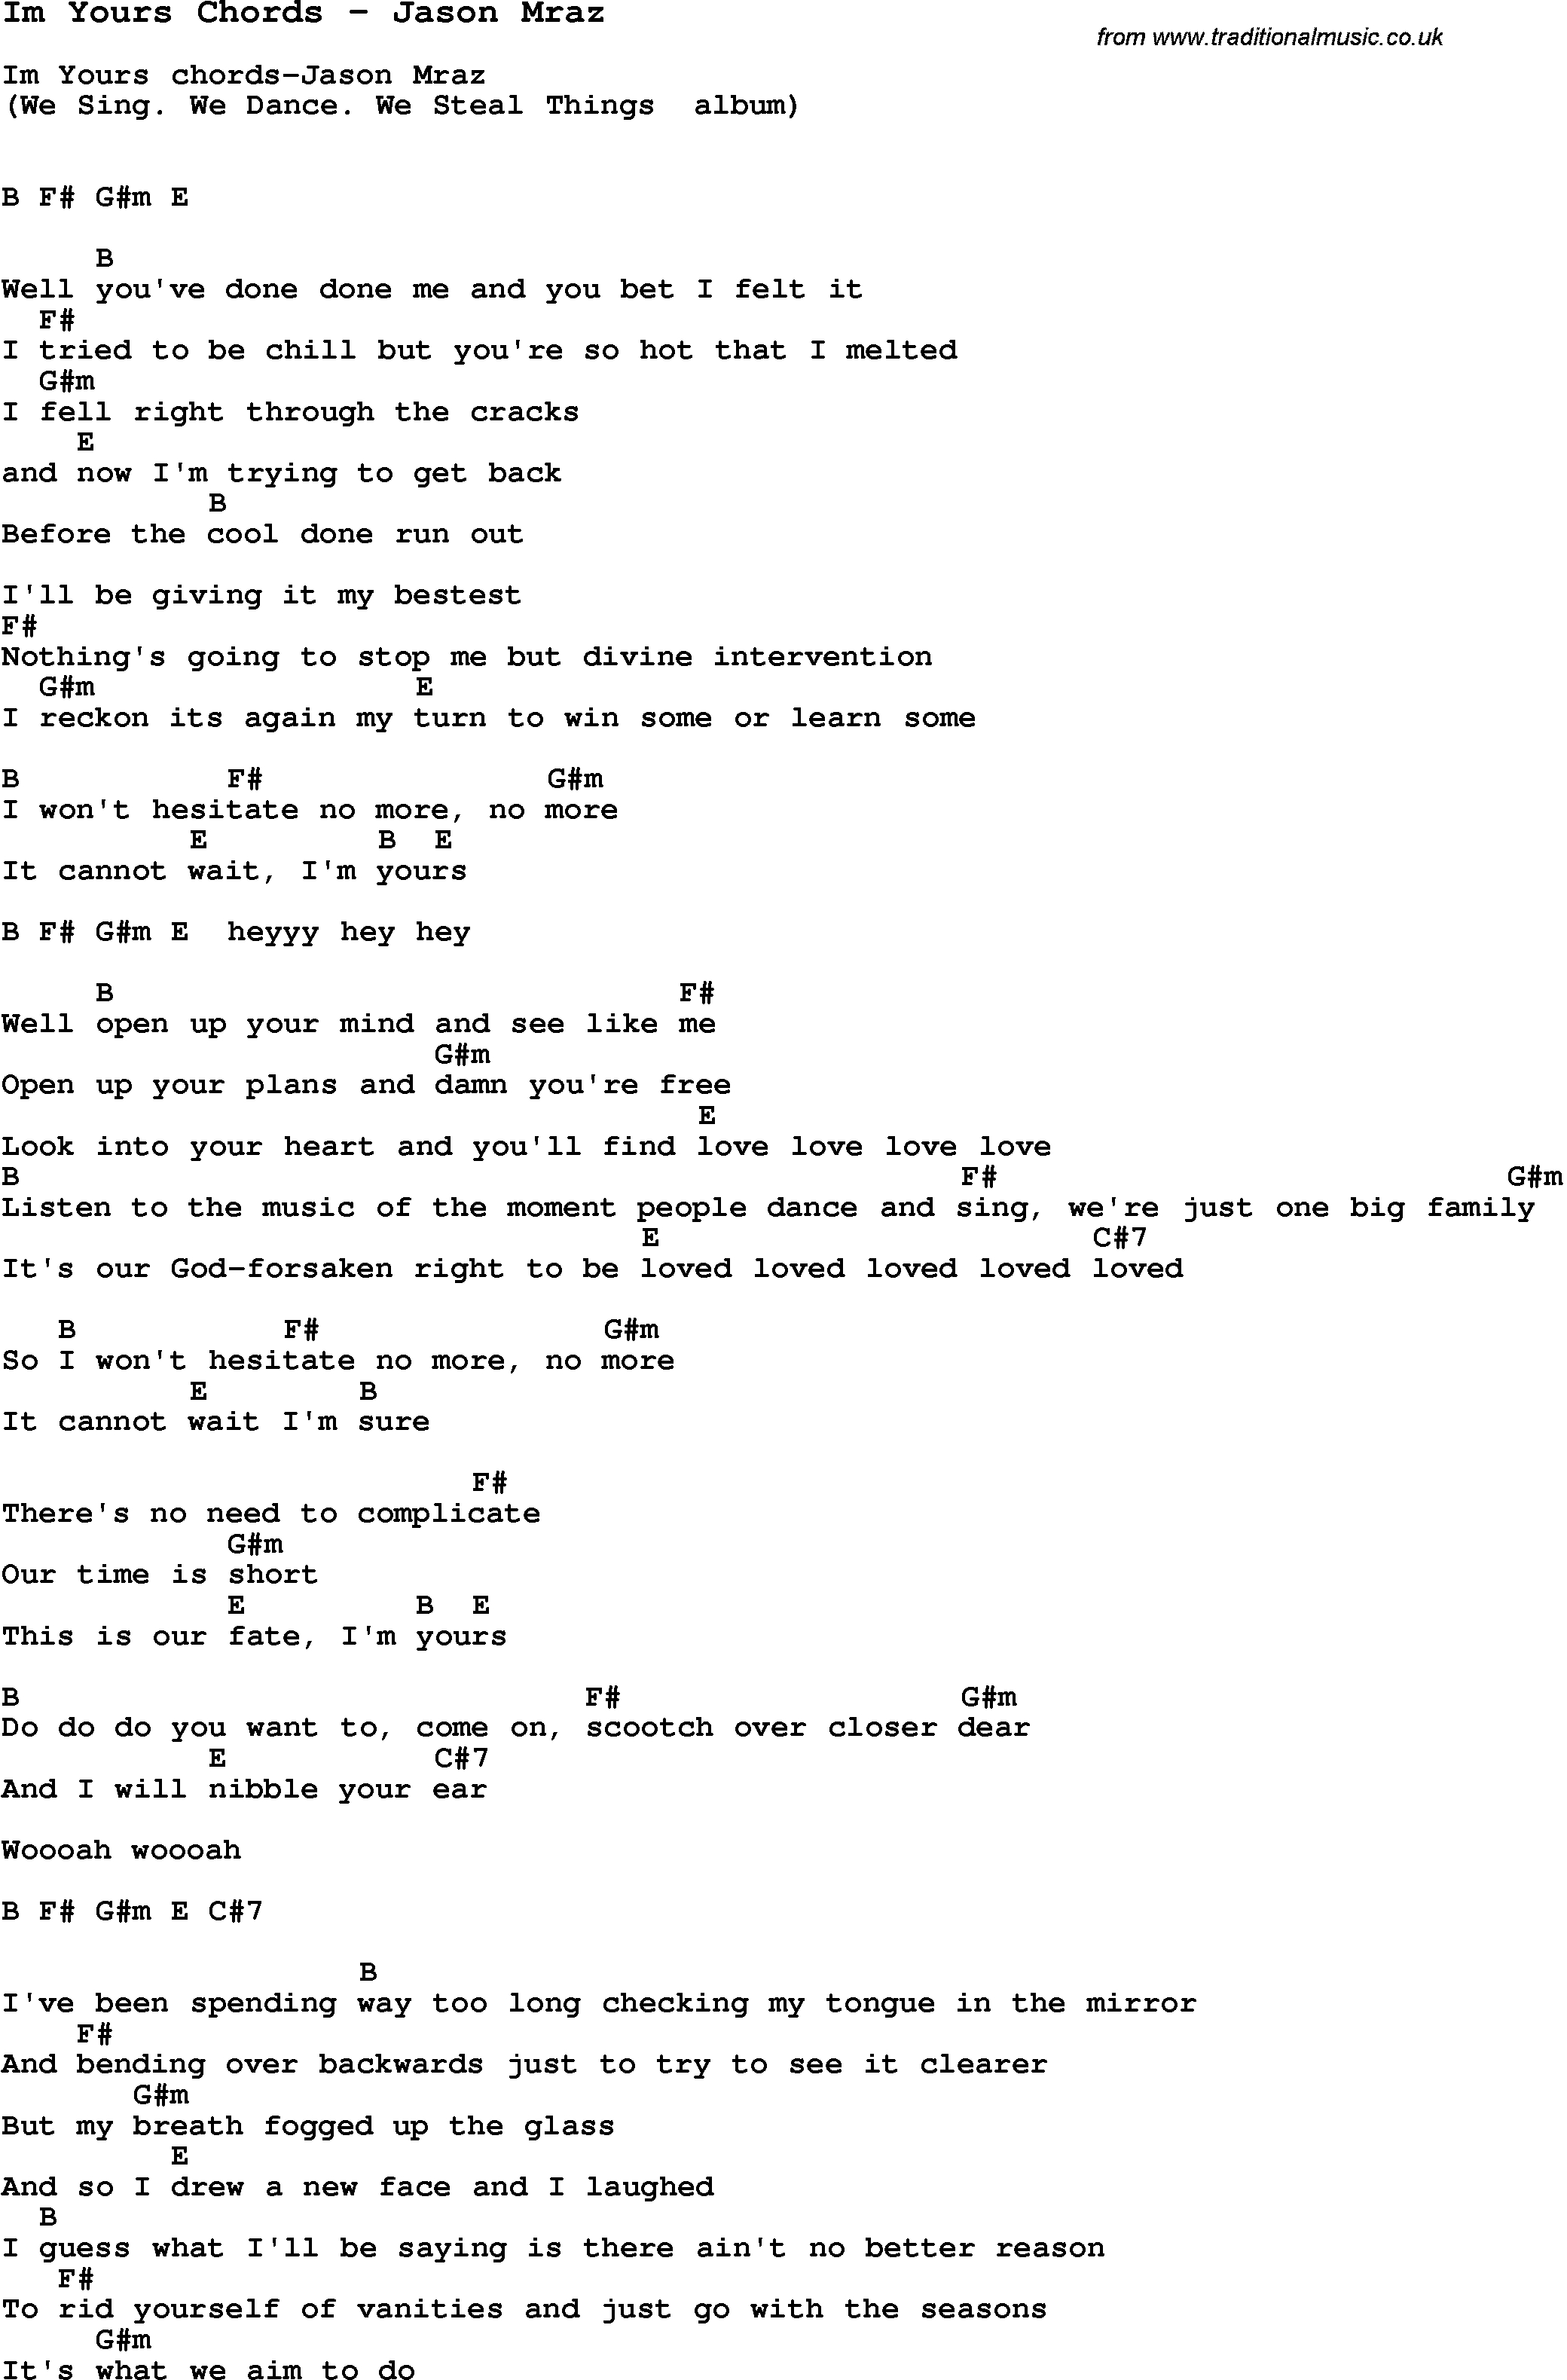 I M Yours Chords Song Im Yours Chords Jason Mraz Song Lyric For Vocal Performance